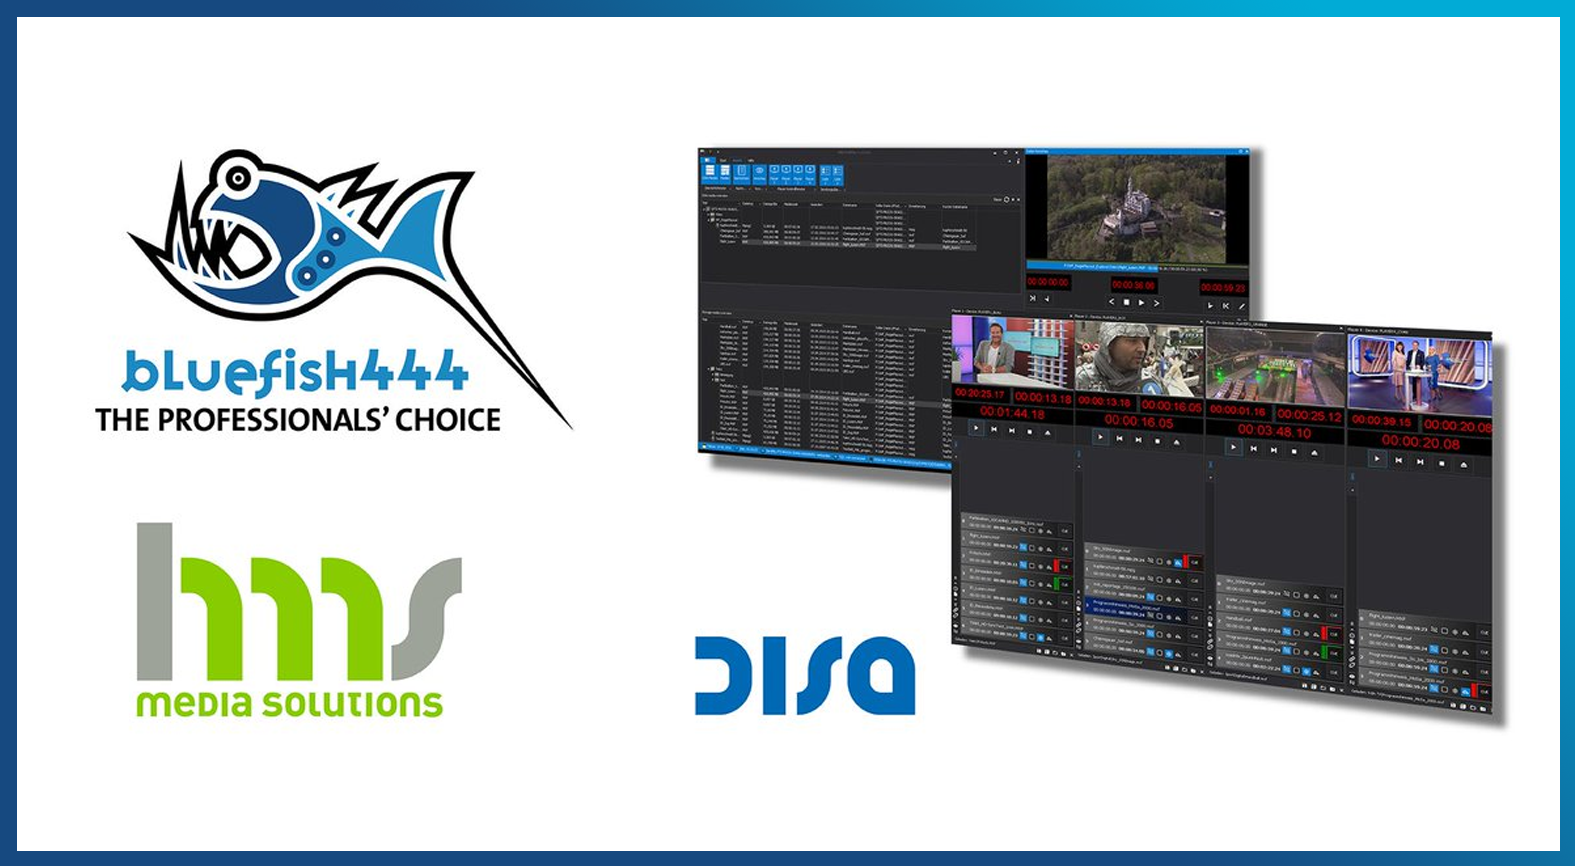 Bluefish444 Announces 4K/HD/SD Support For HMS DISA